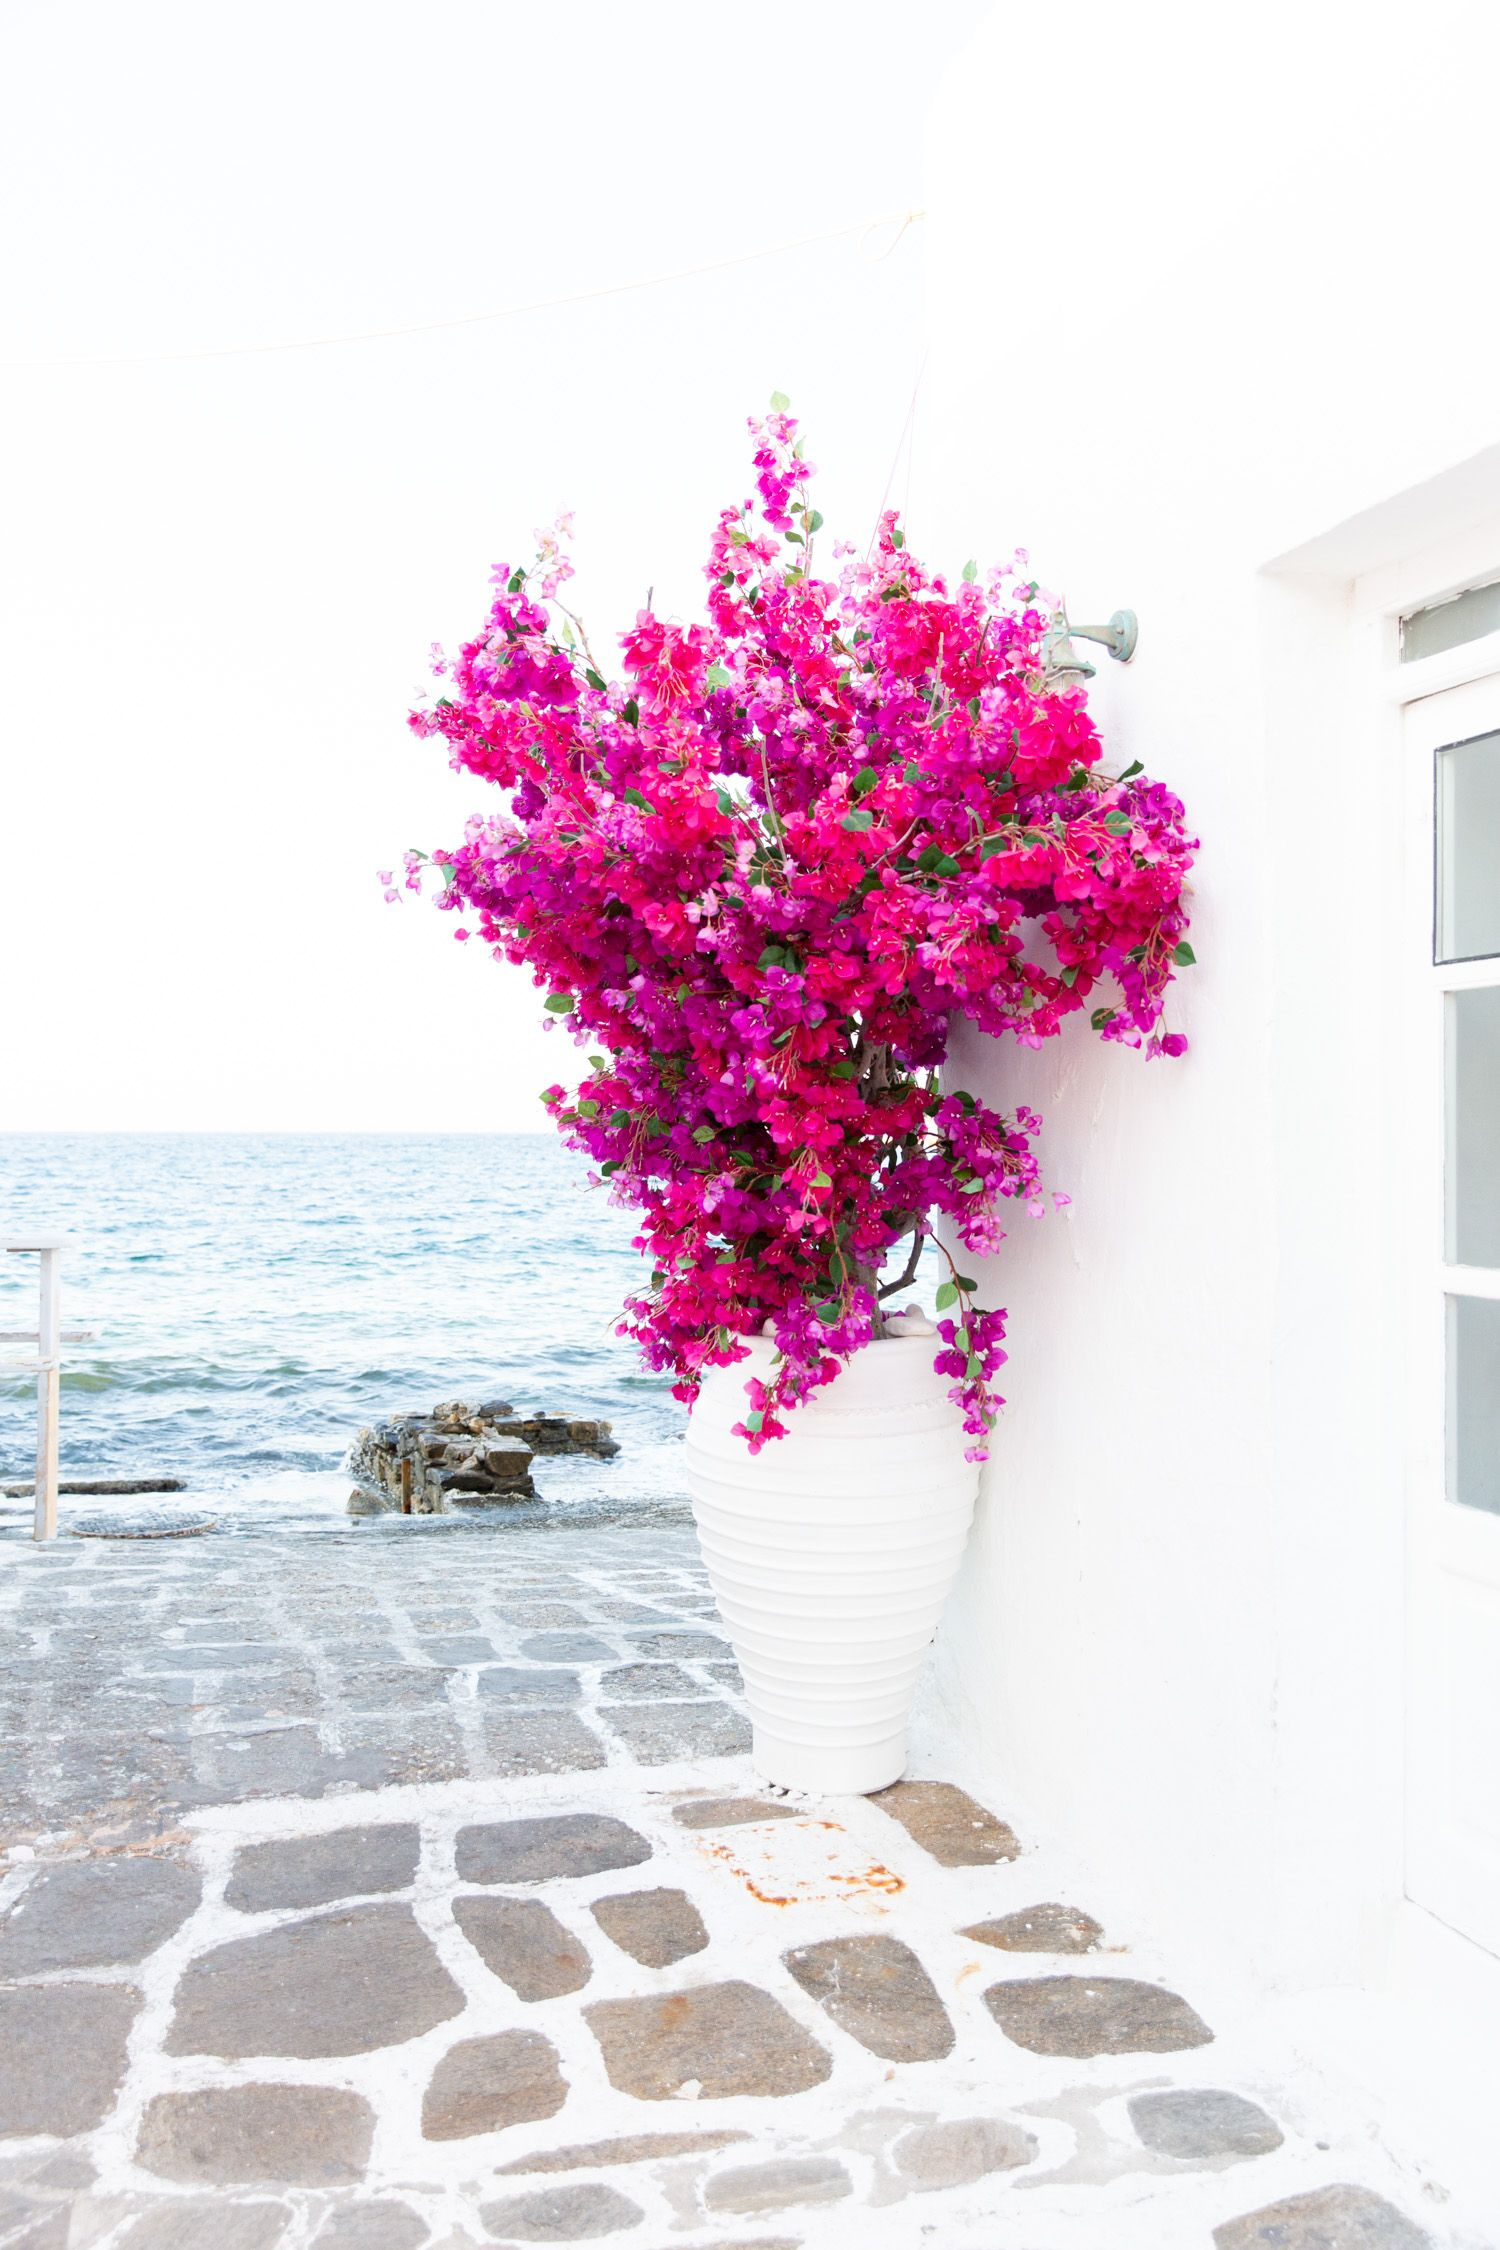 PAROS ISLAND TRAVEL GUIDE - Anna with Love Photography